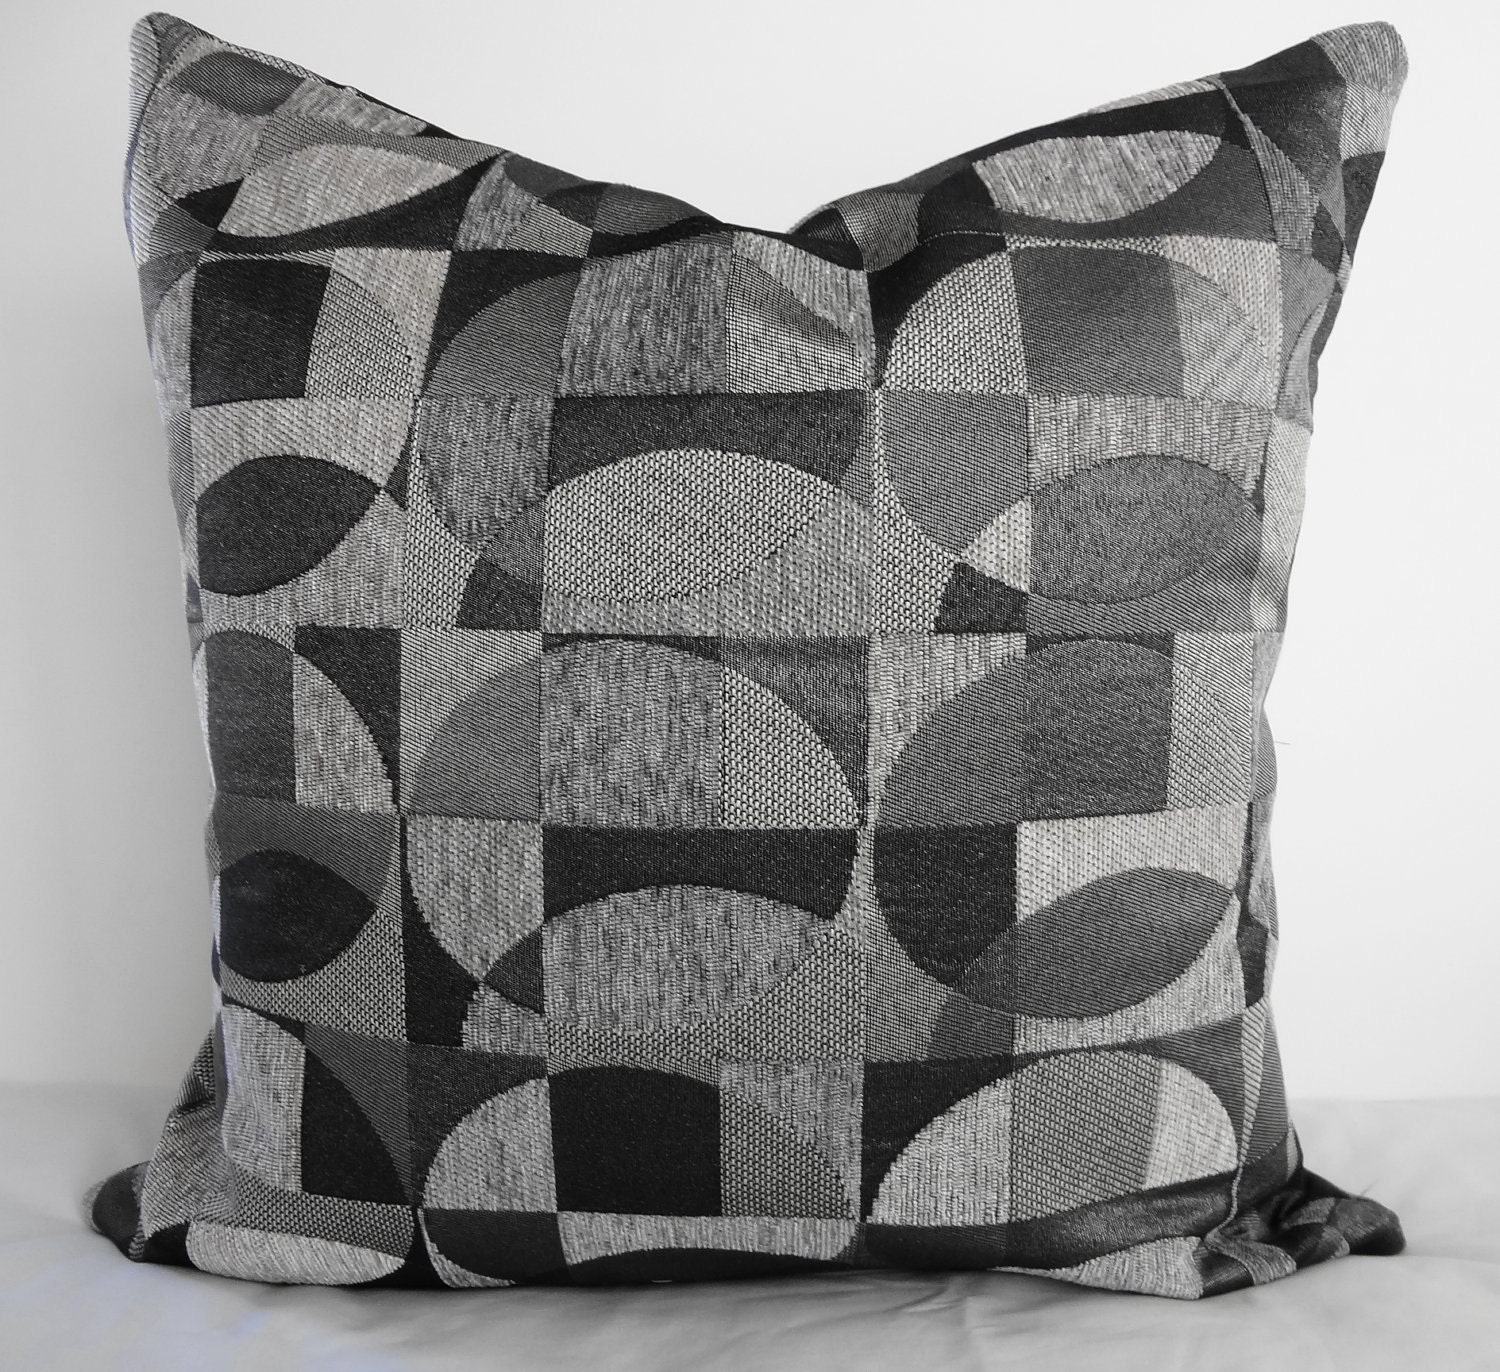 Black And Silver Decorative Pillows : Geometric Decorative Pillow Covers Black Silver & Gray